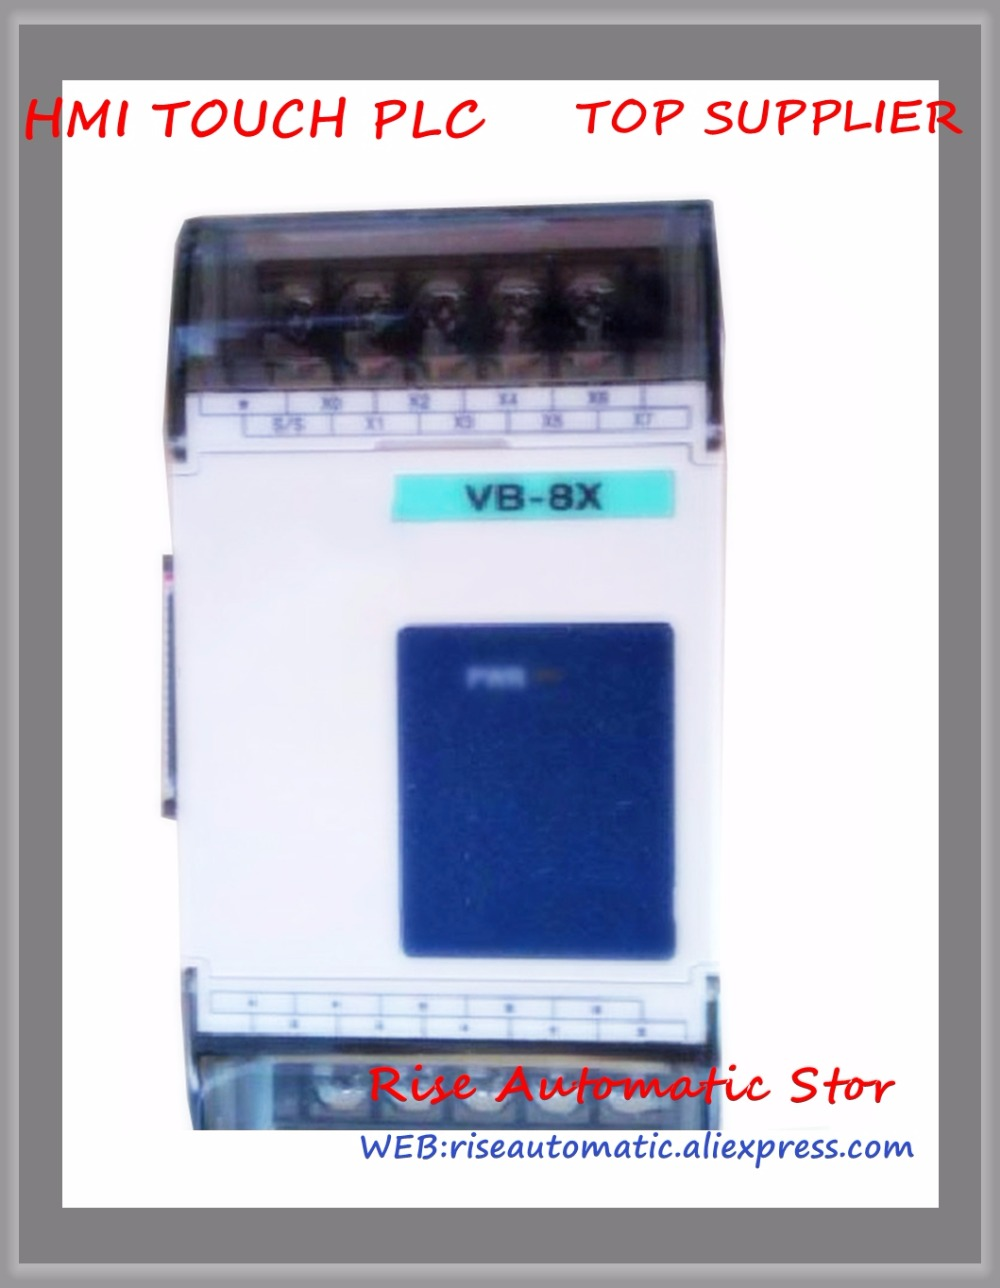 VB-8X PLC New Original 24VDC 8 point input Expansion Module